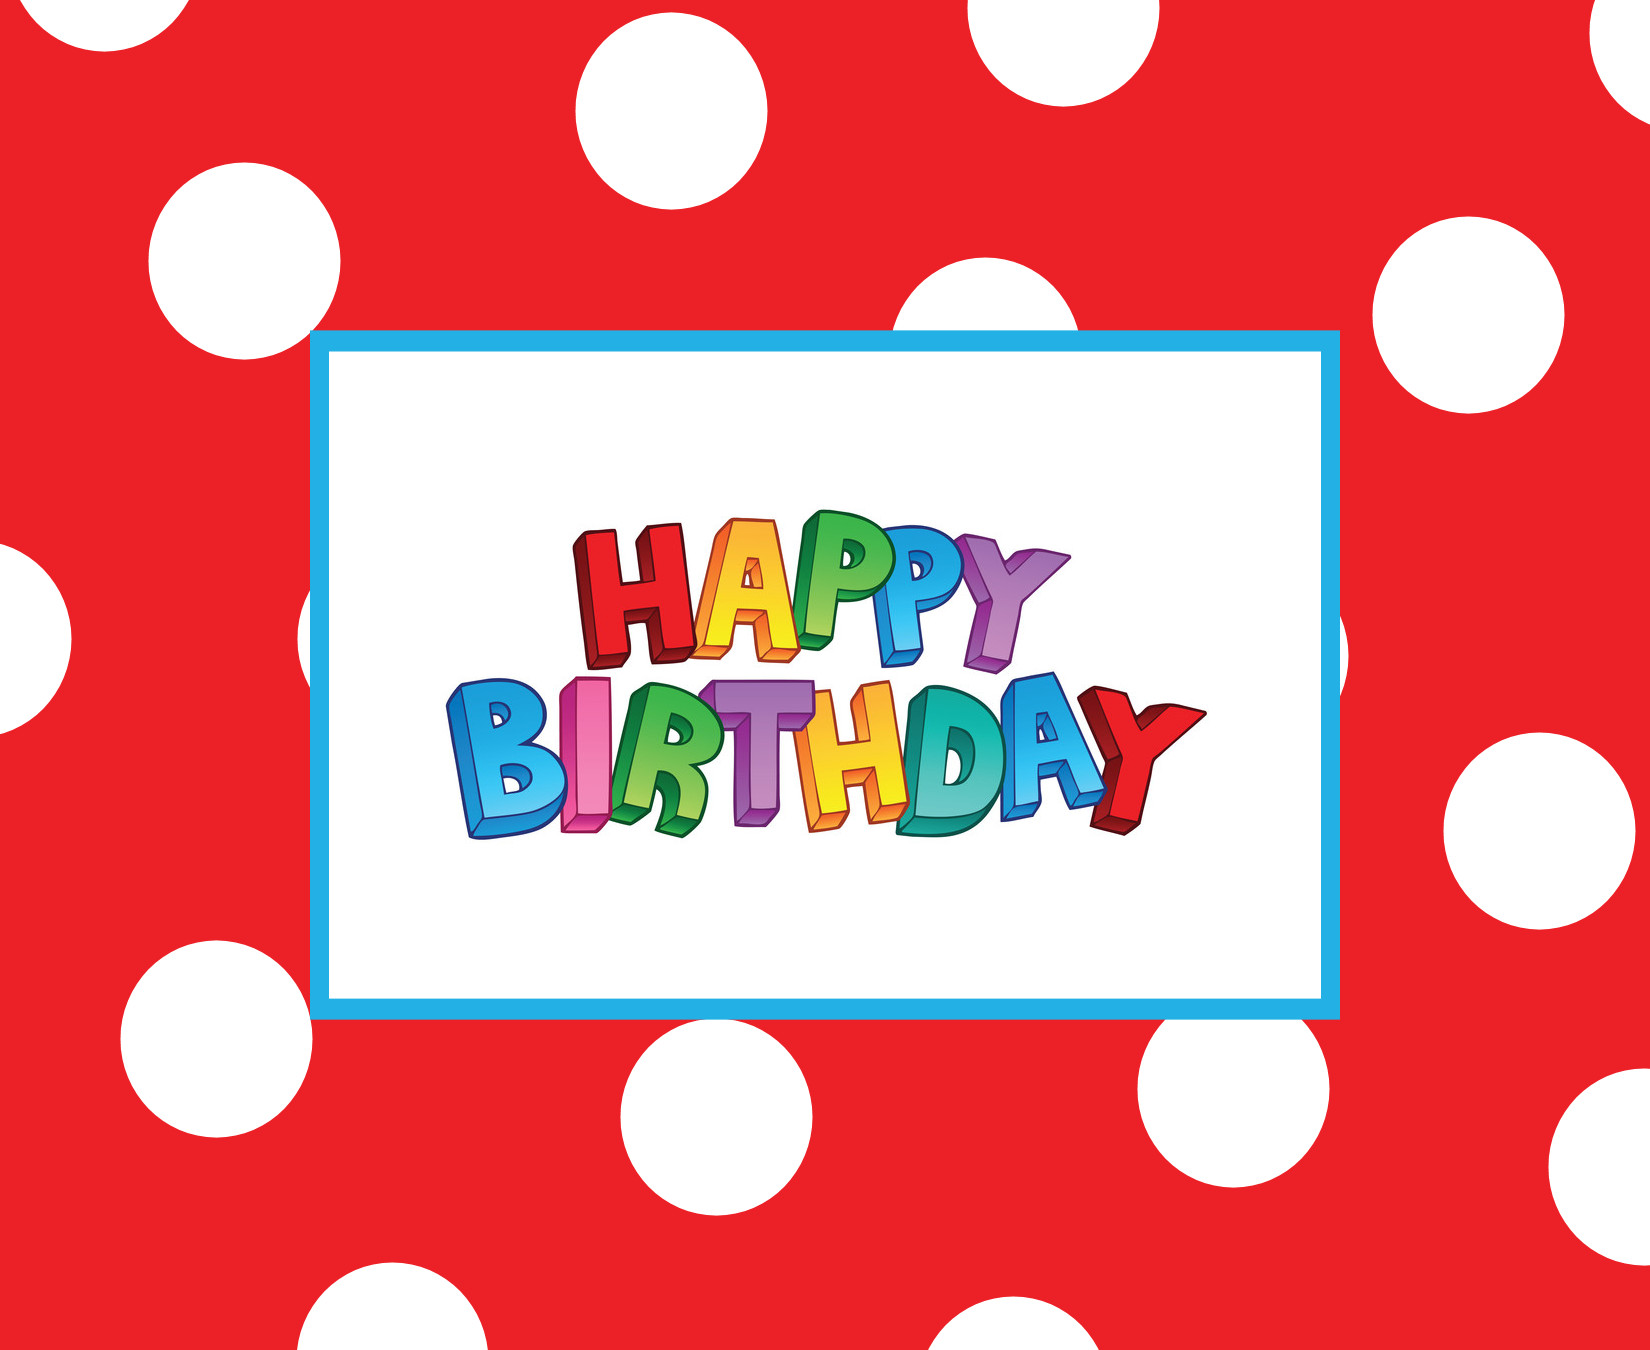 Free Printable Kids Birthday Cards  Free Printable Birthday Cards & Another Giveaway